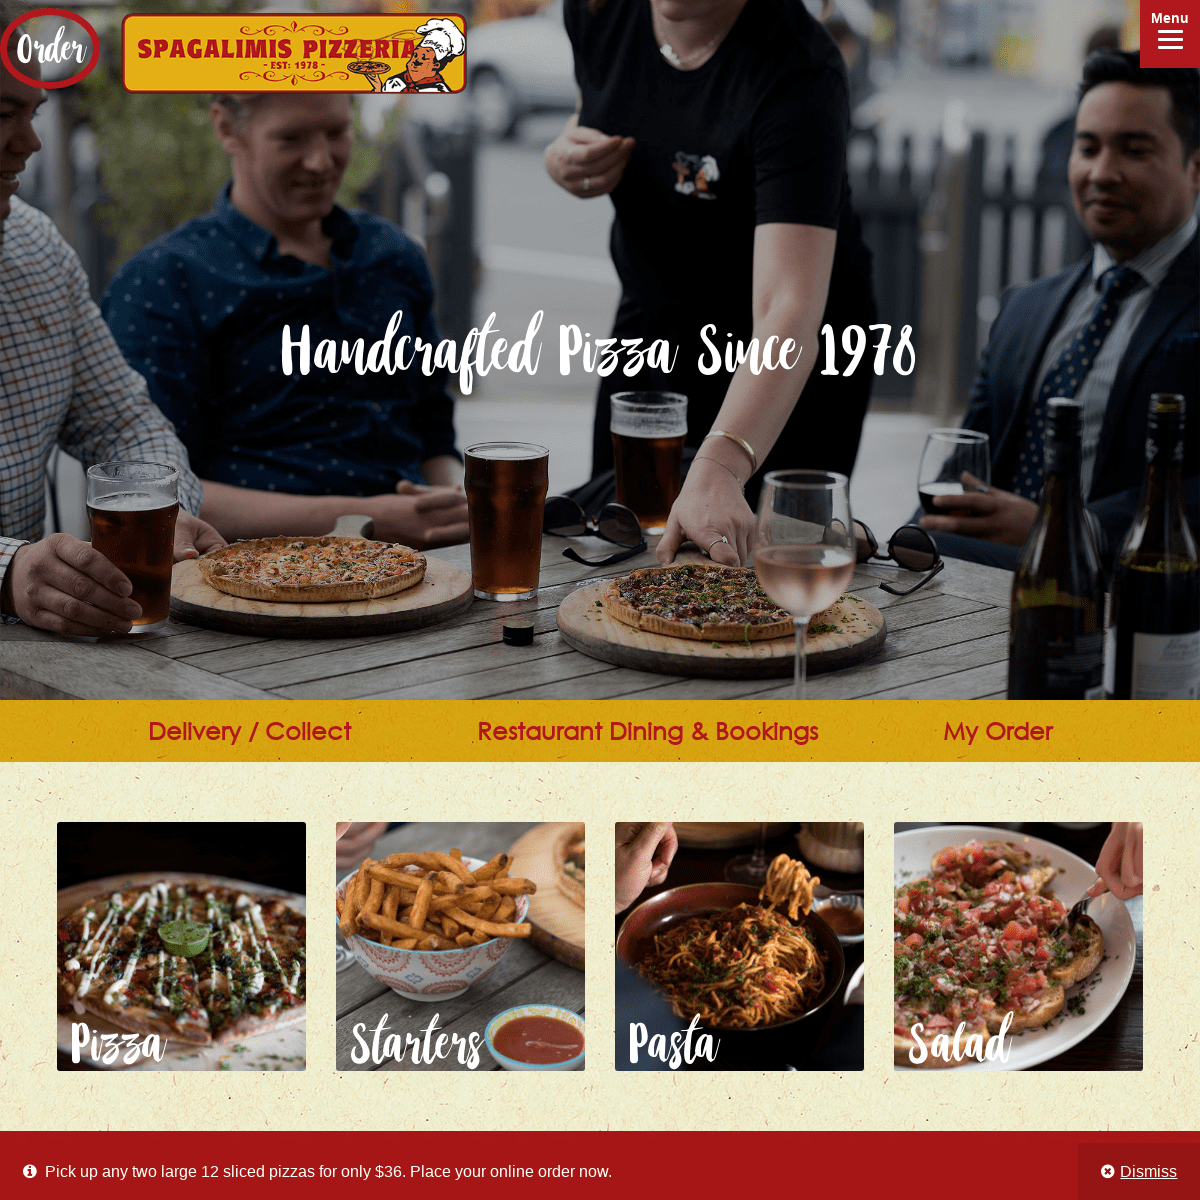 Spagalimis Pizzeria - Handcrafted Christchurch Pizza since 1978